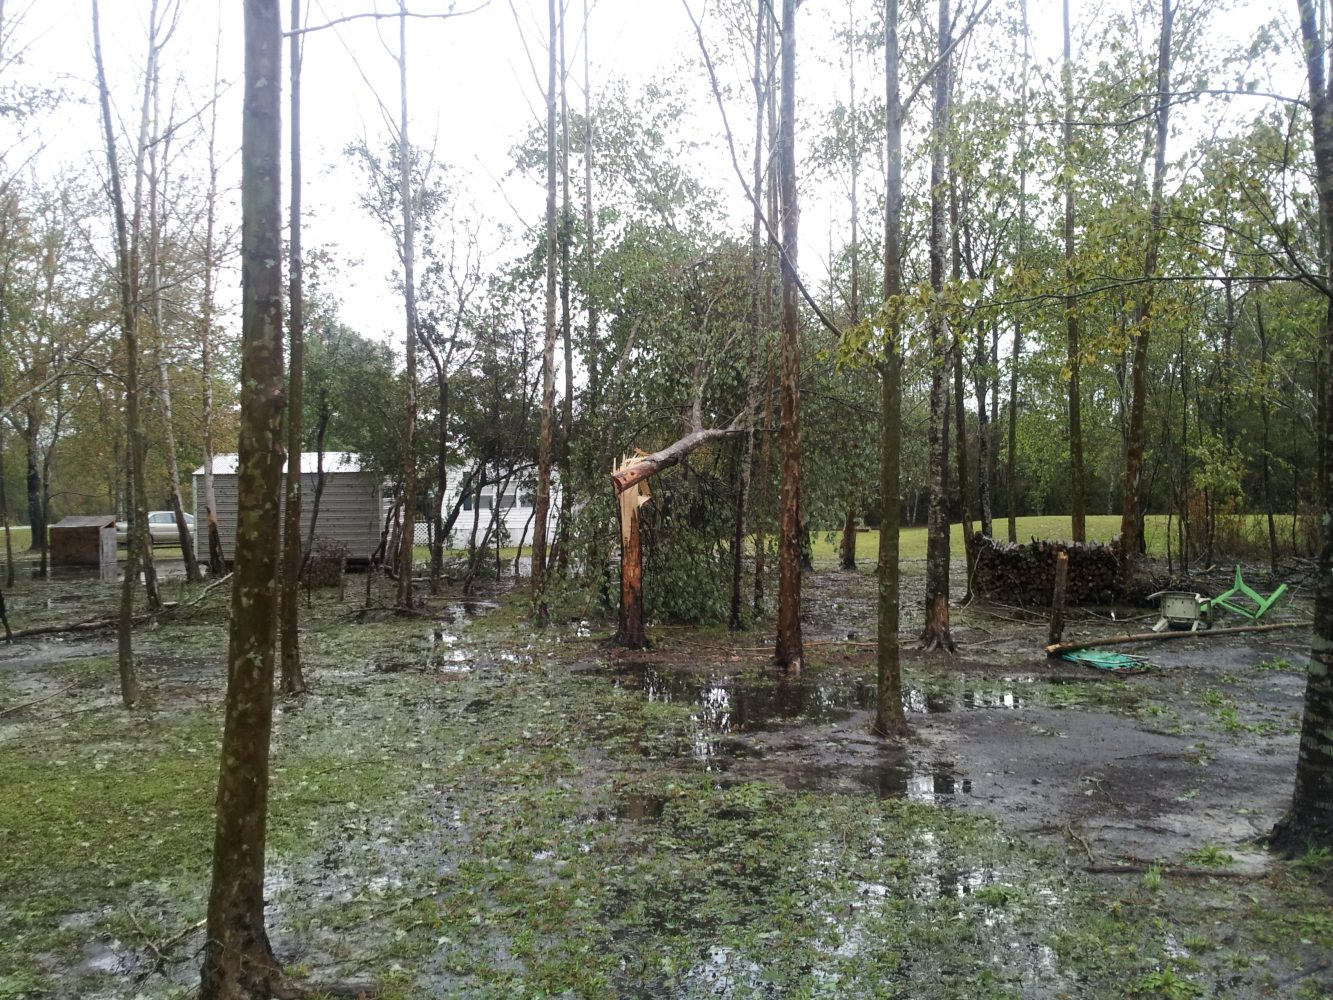 Flooding and broken trees remained in an area hit by strong winds. Courtesy: Bradford County Emergency Management